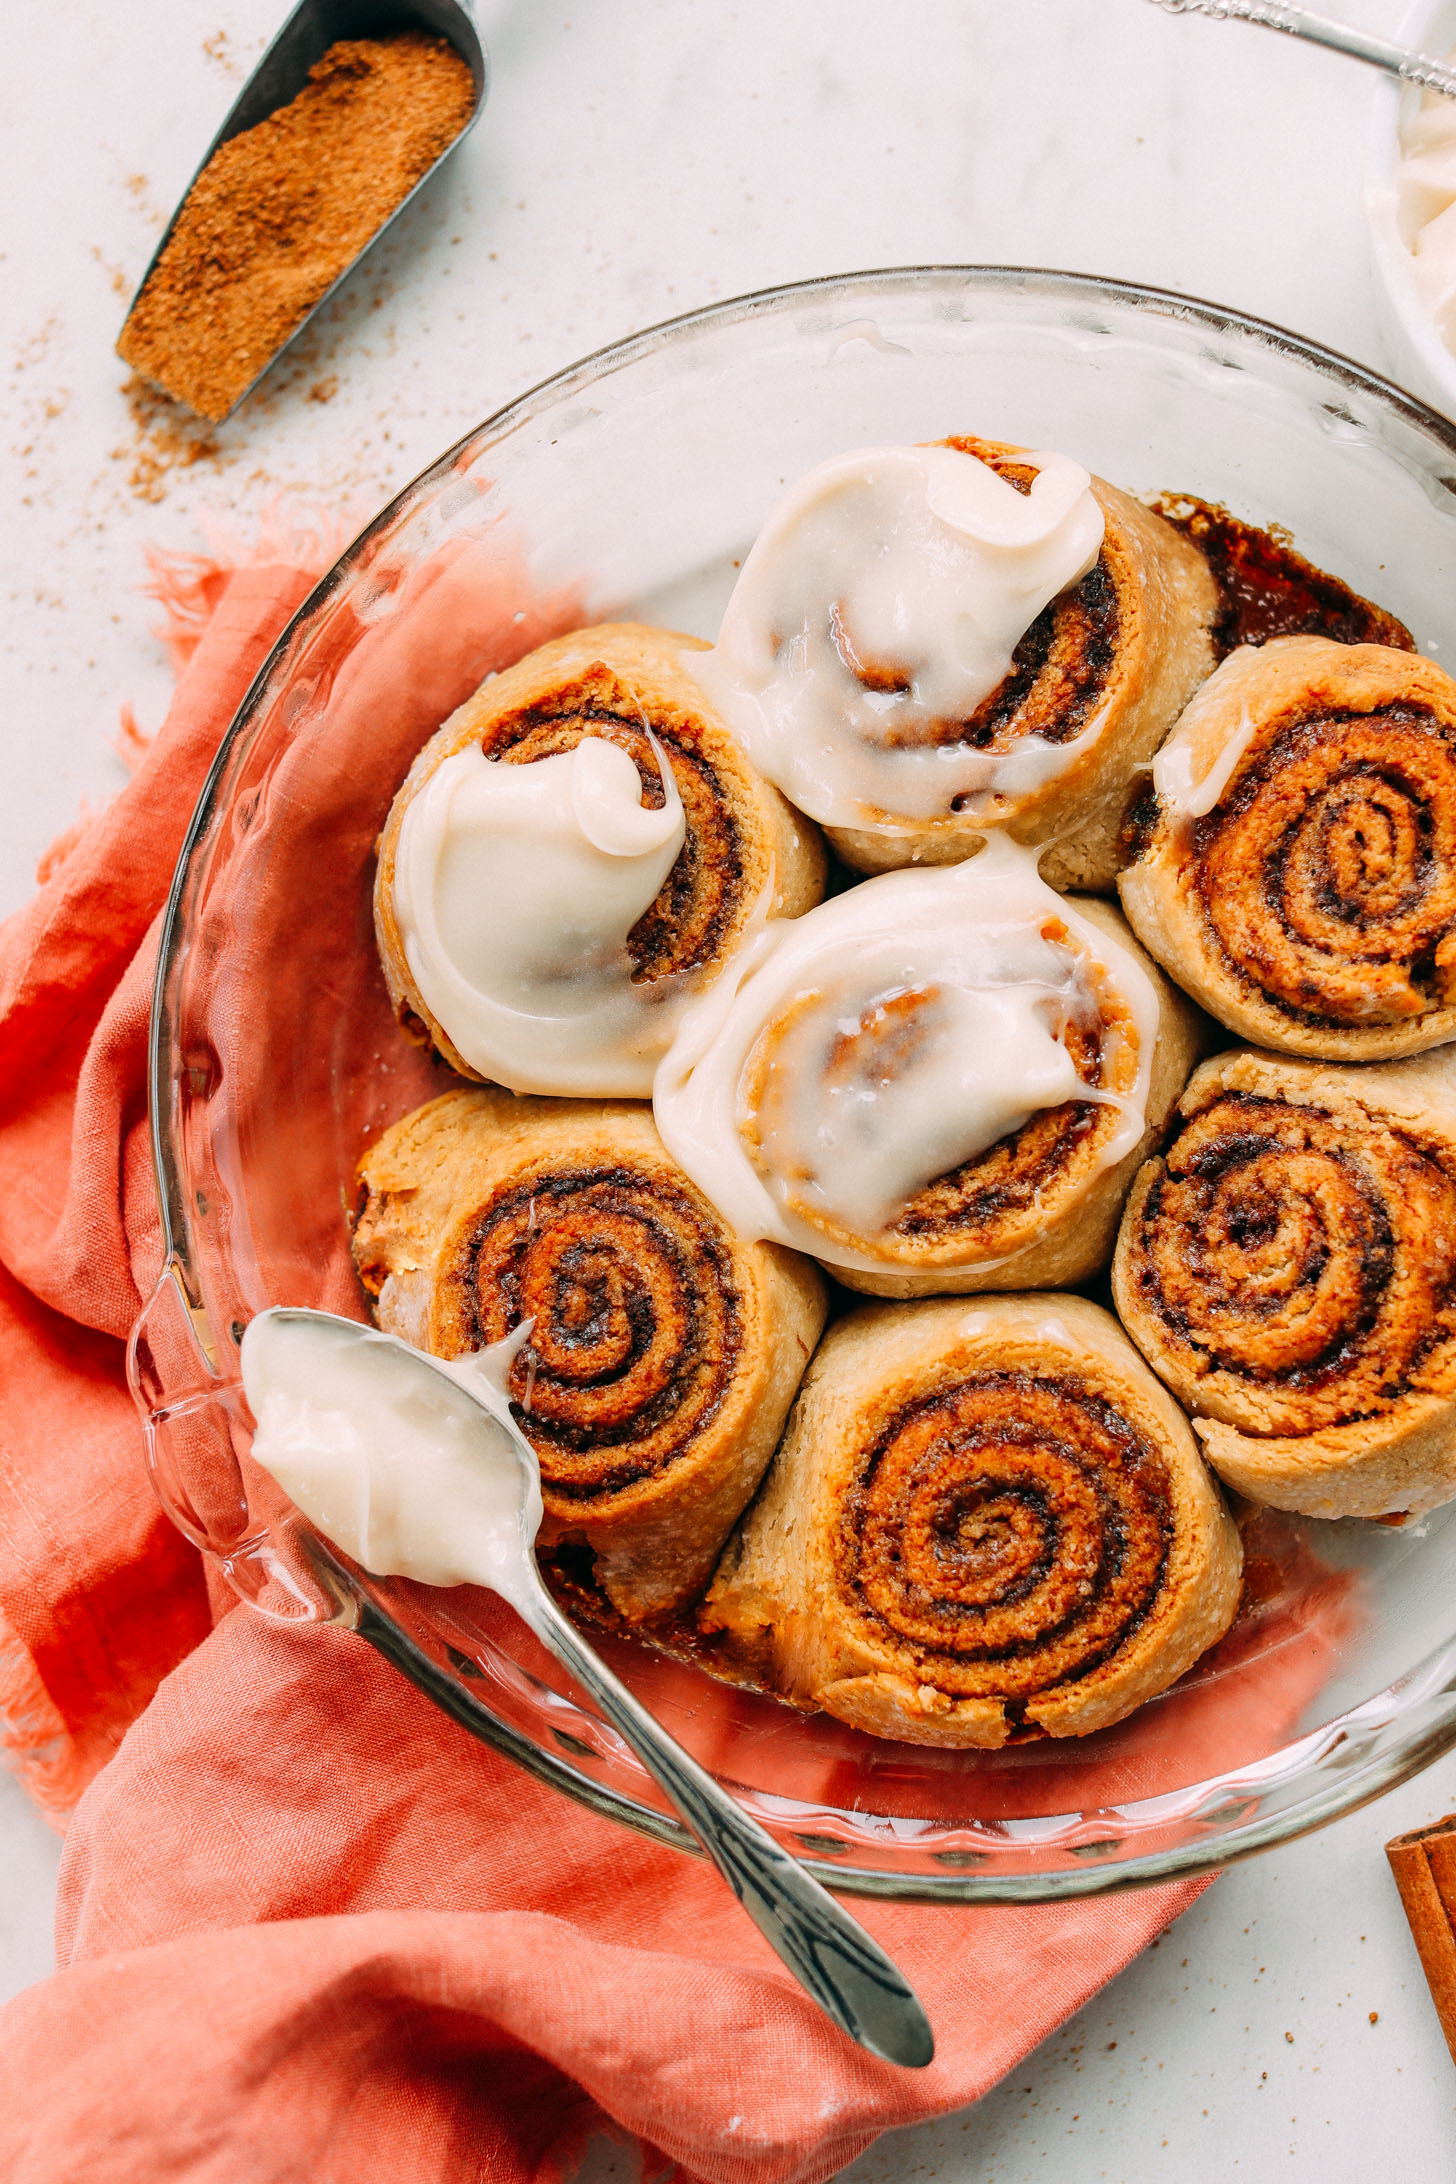 Glass baking dish with delicious Vegan Gluten-Free Cinnamon Rolls with glaze